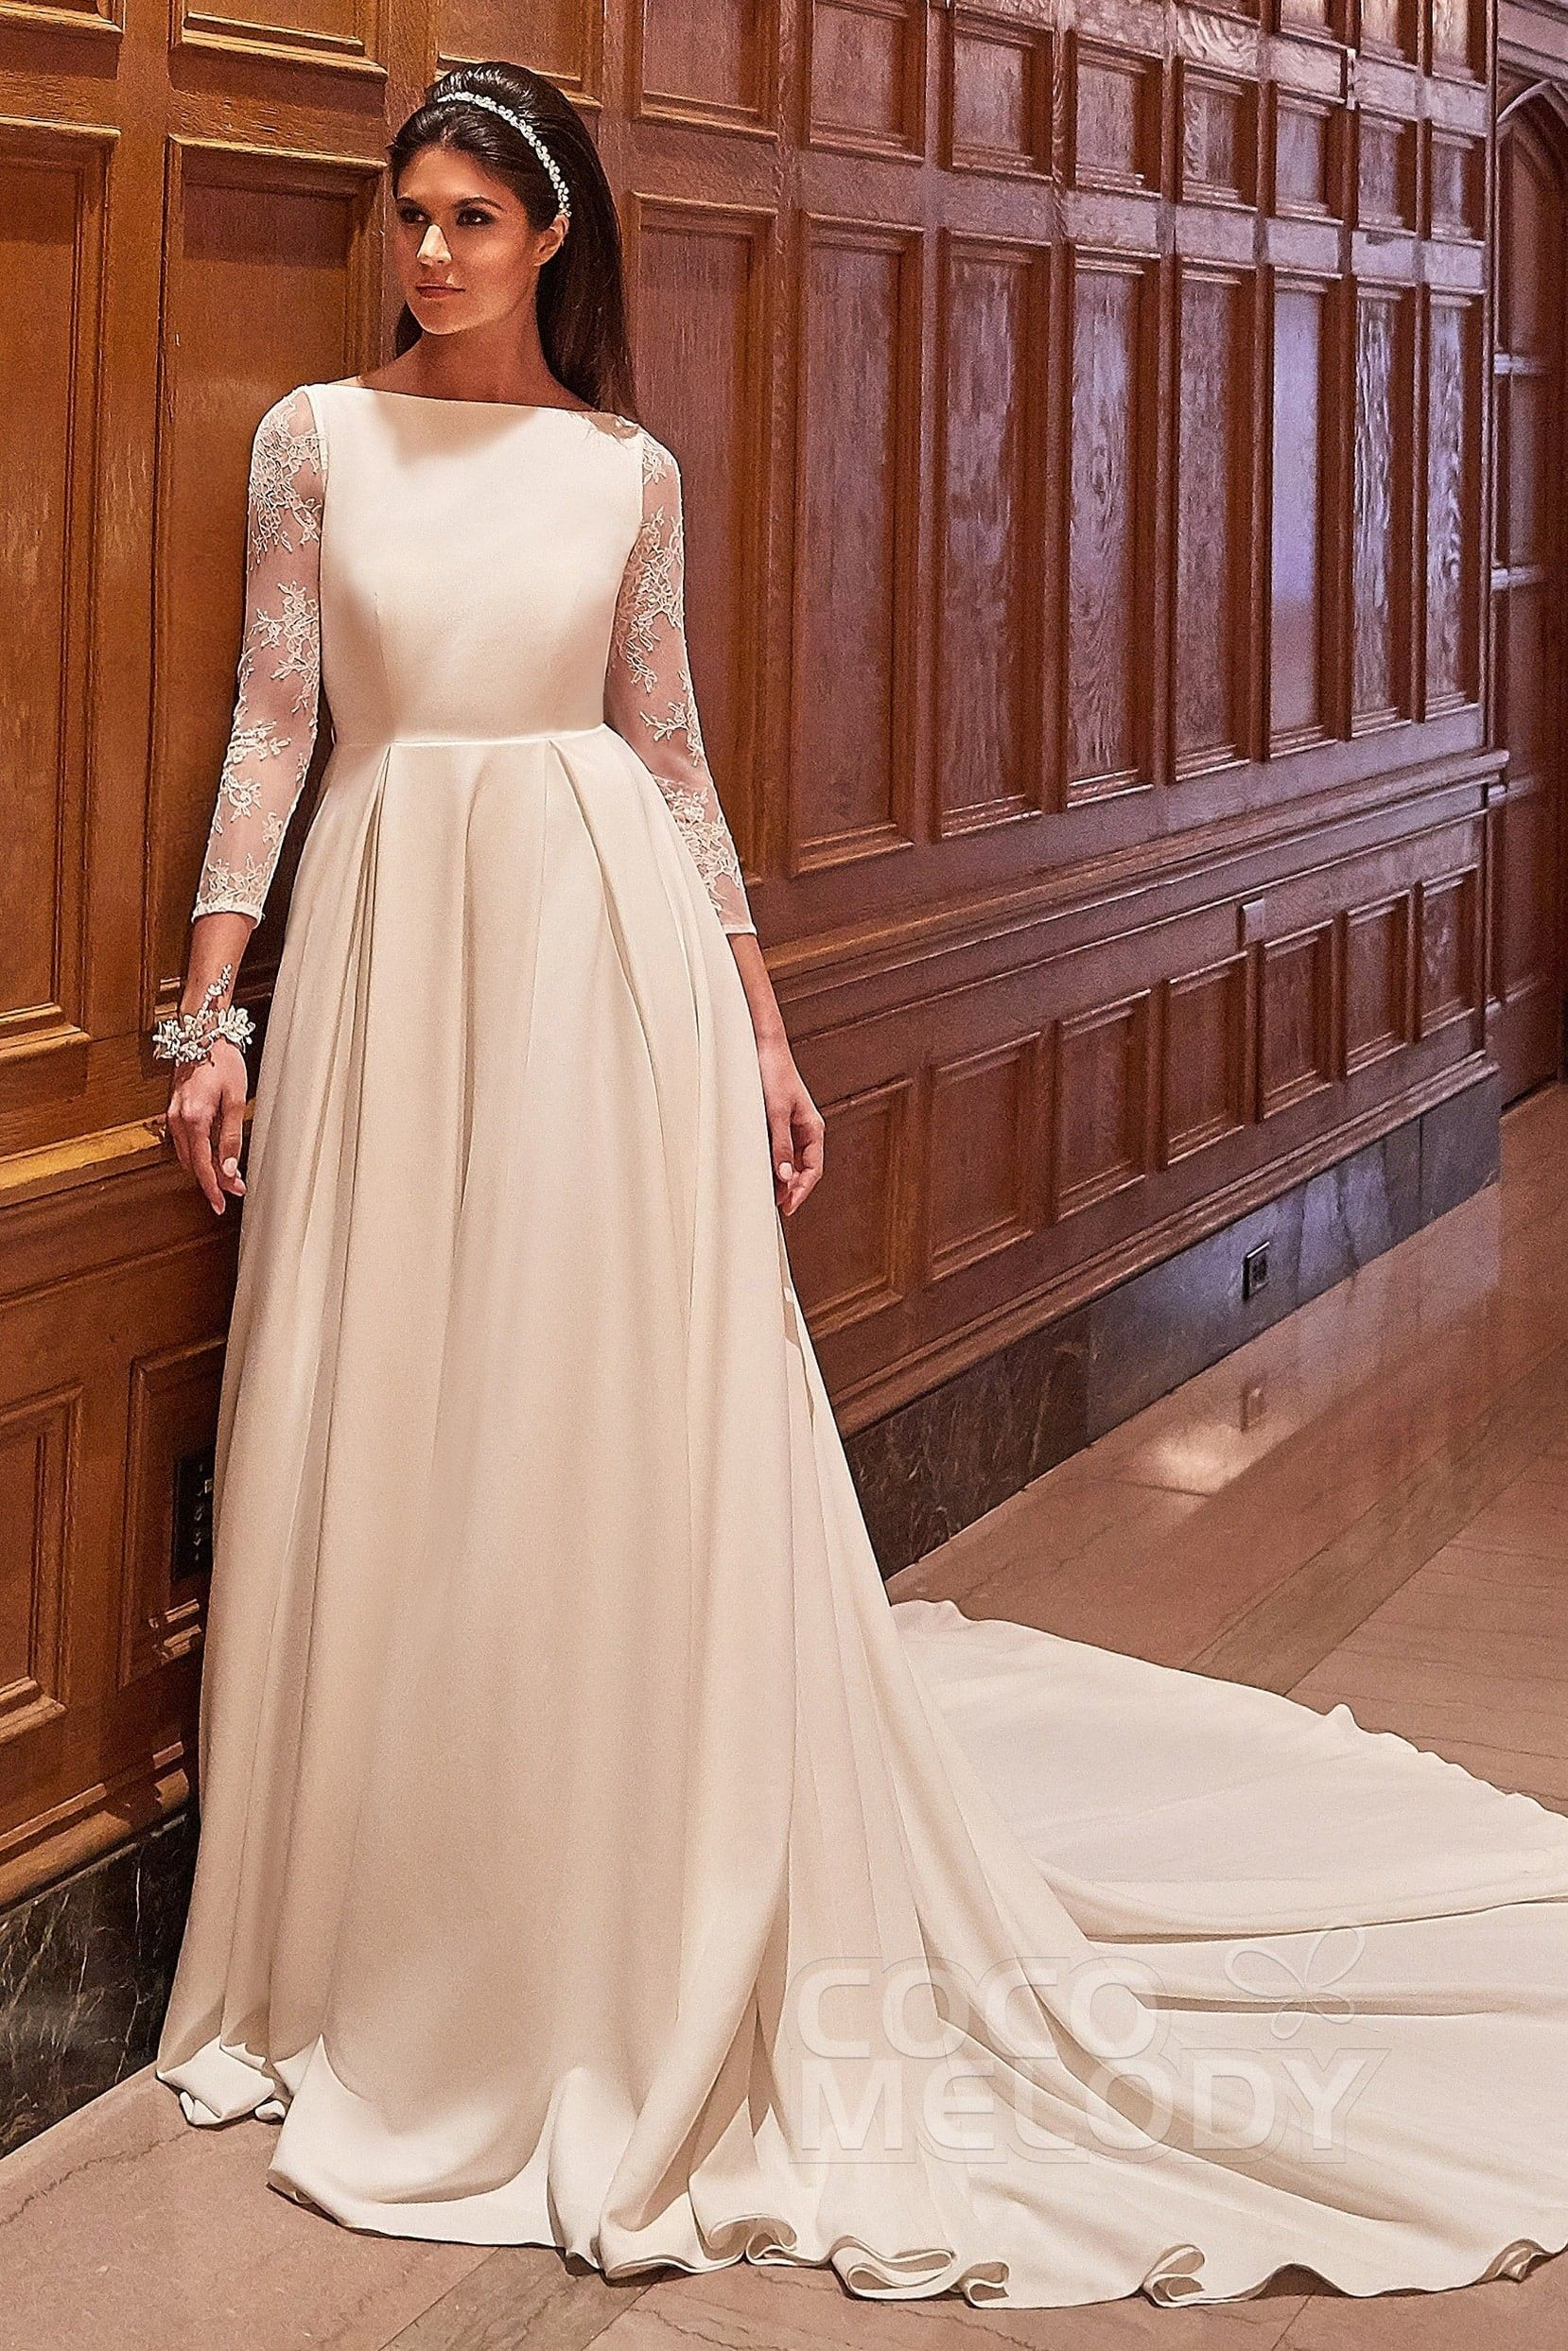 Usd 699 A Line Court Train Long Sleeve Wedding Dress Ld5771 A Line Wedding Dress Affordable Wedding Dresses Nontraditional Wedding Dress